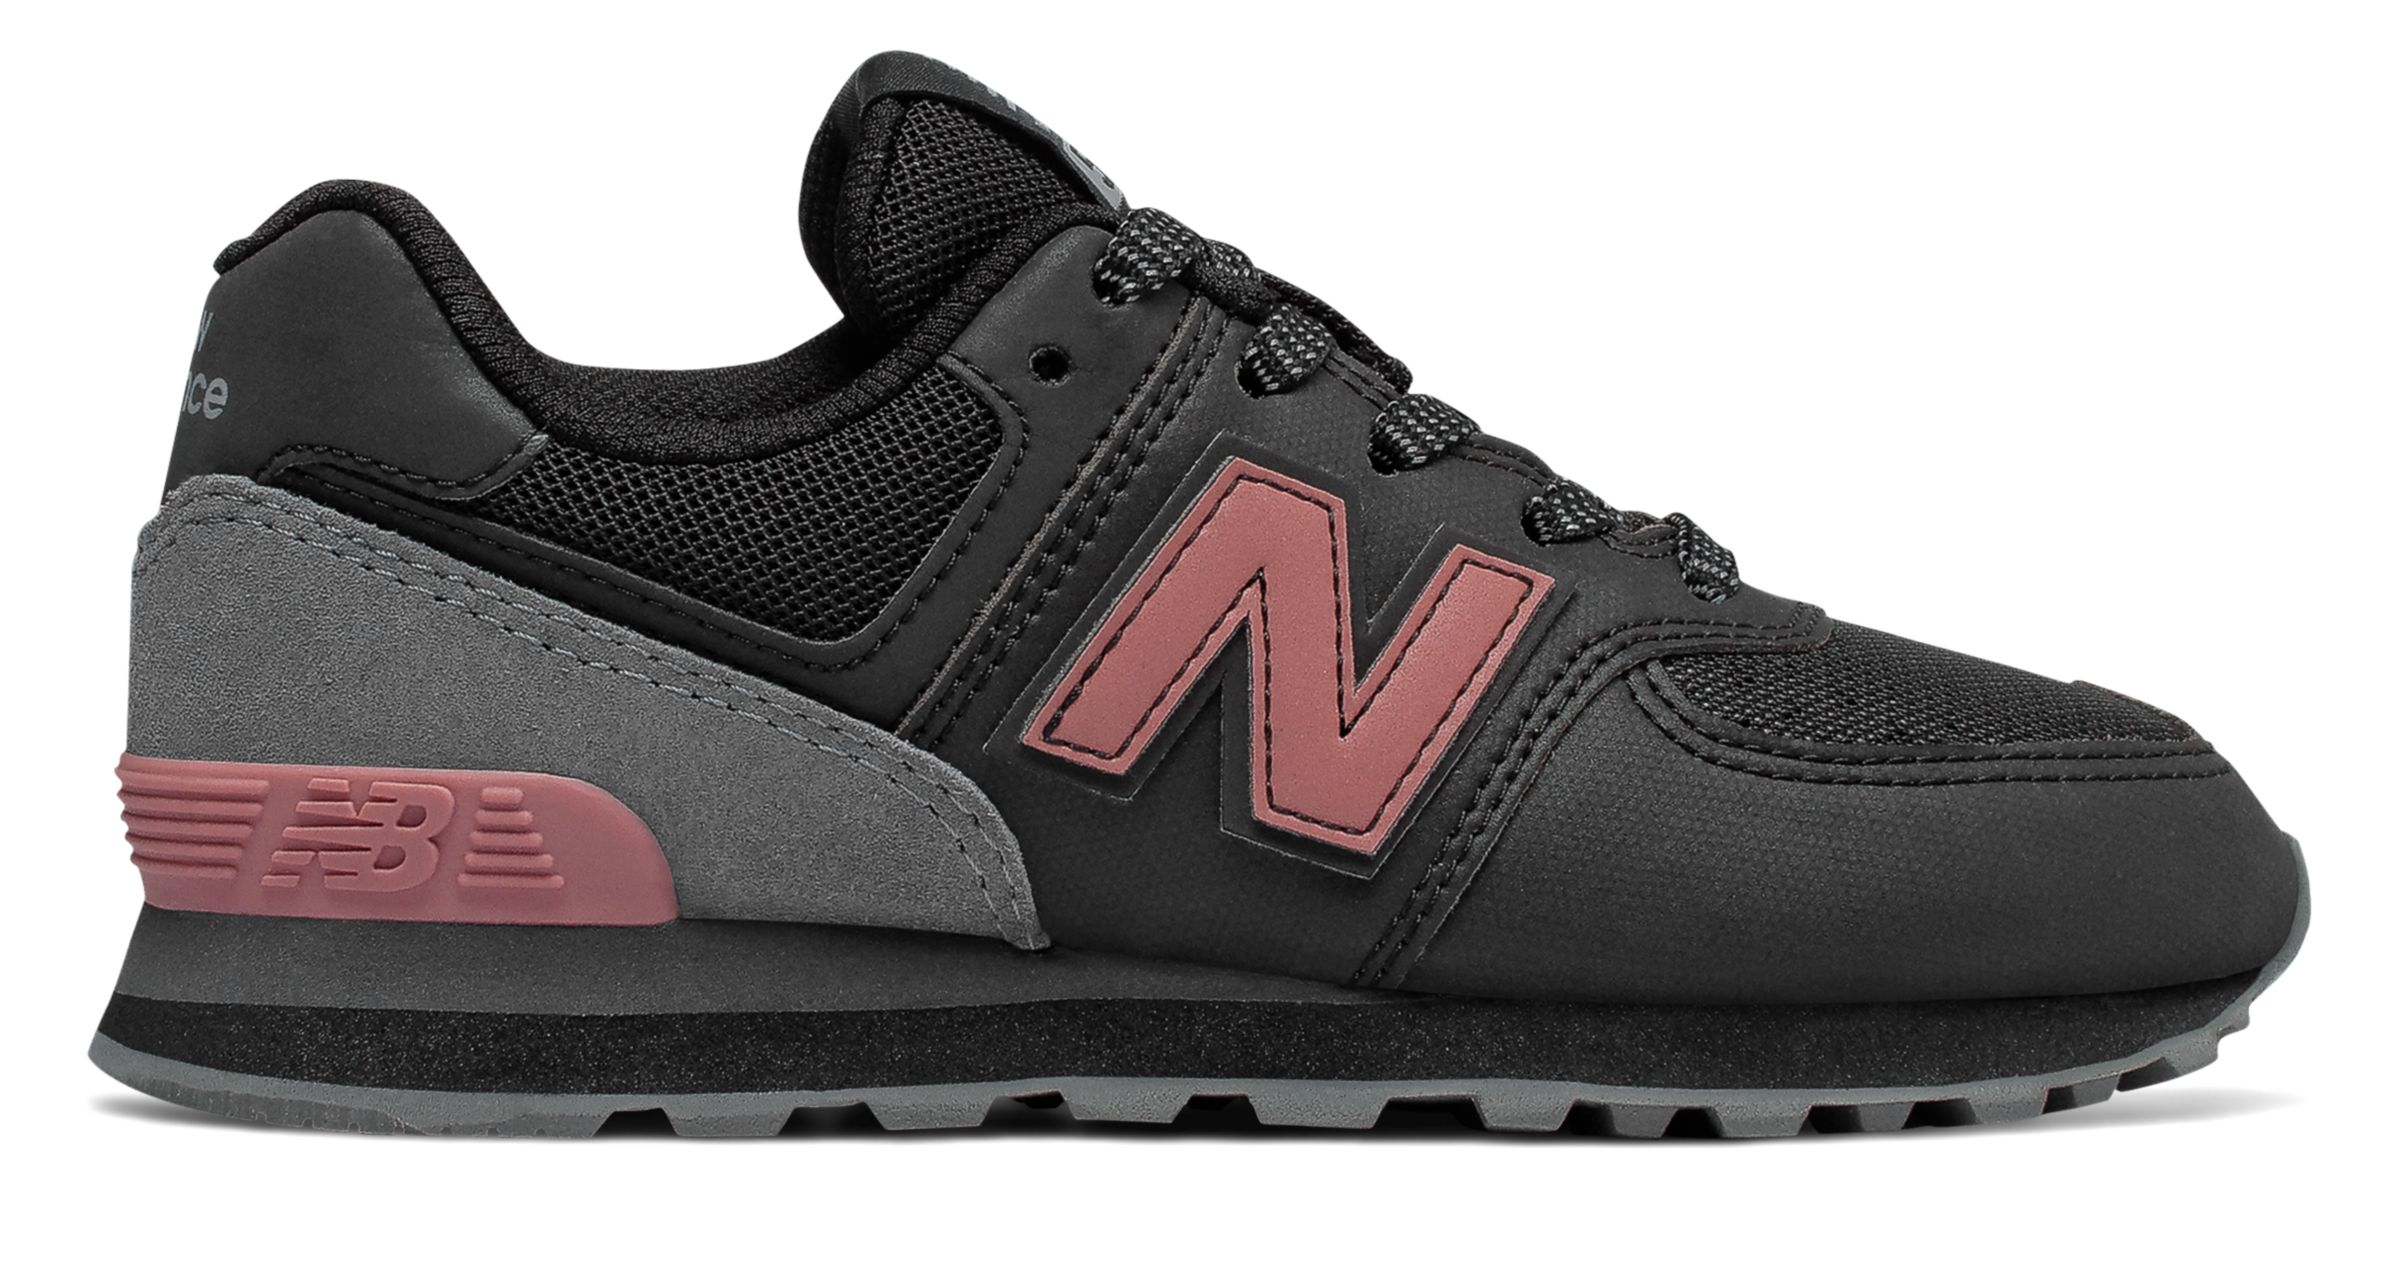 c1bcfa5d805cc New Balance Kid's 574 Day and Night Infant Girls Shoes Black with ...